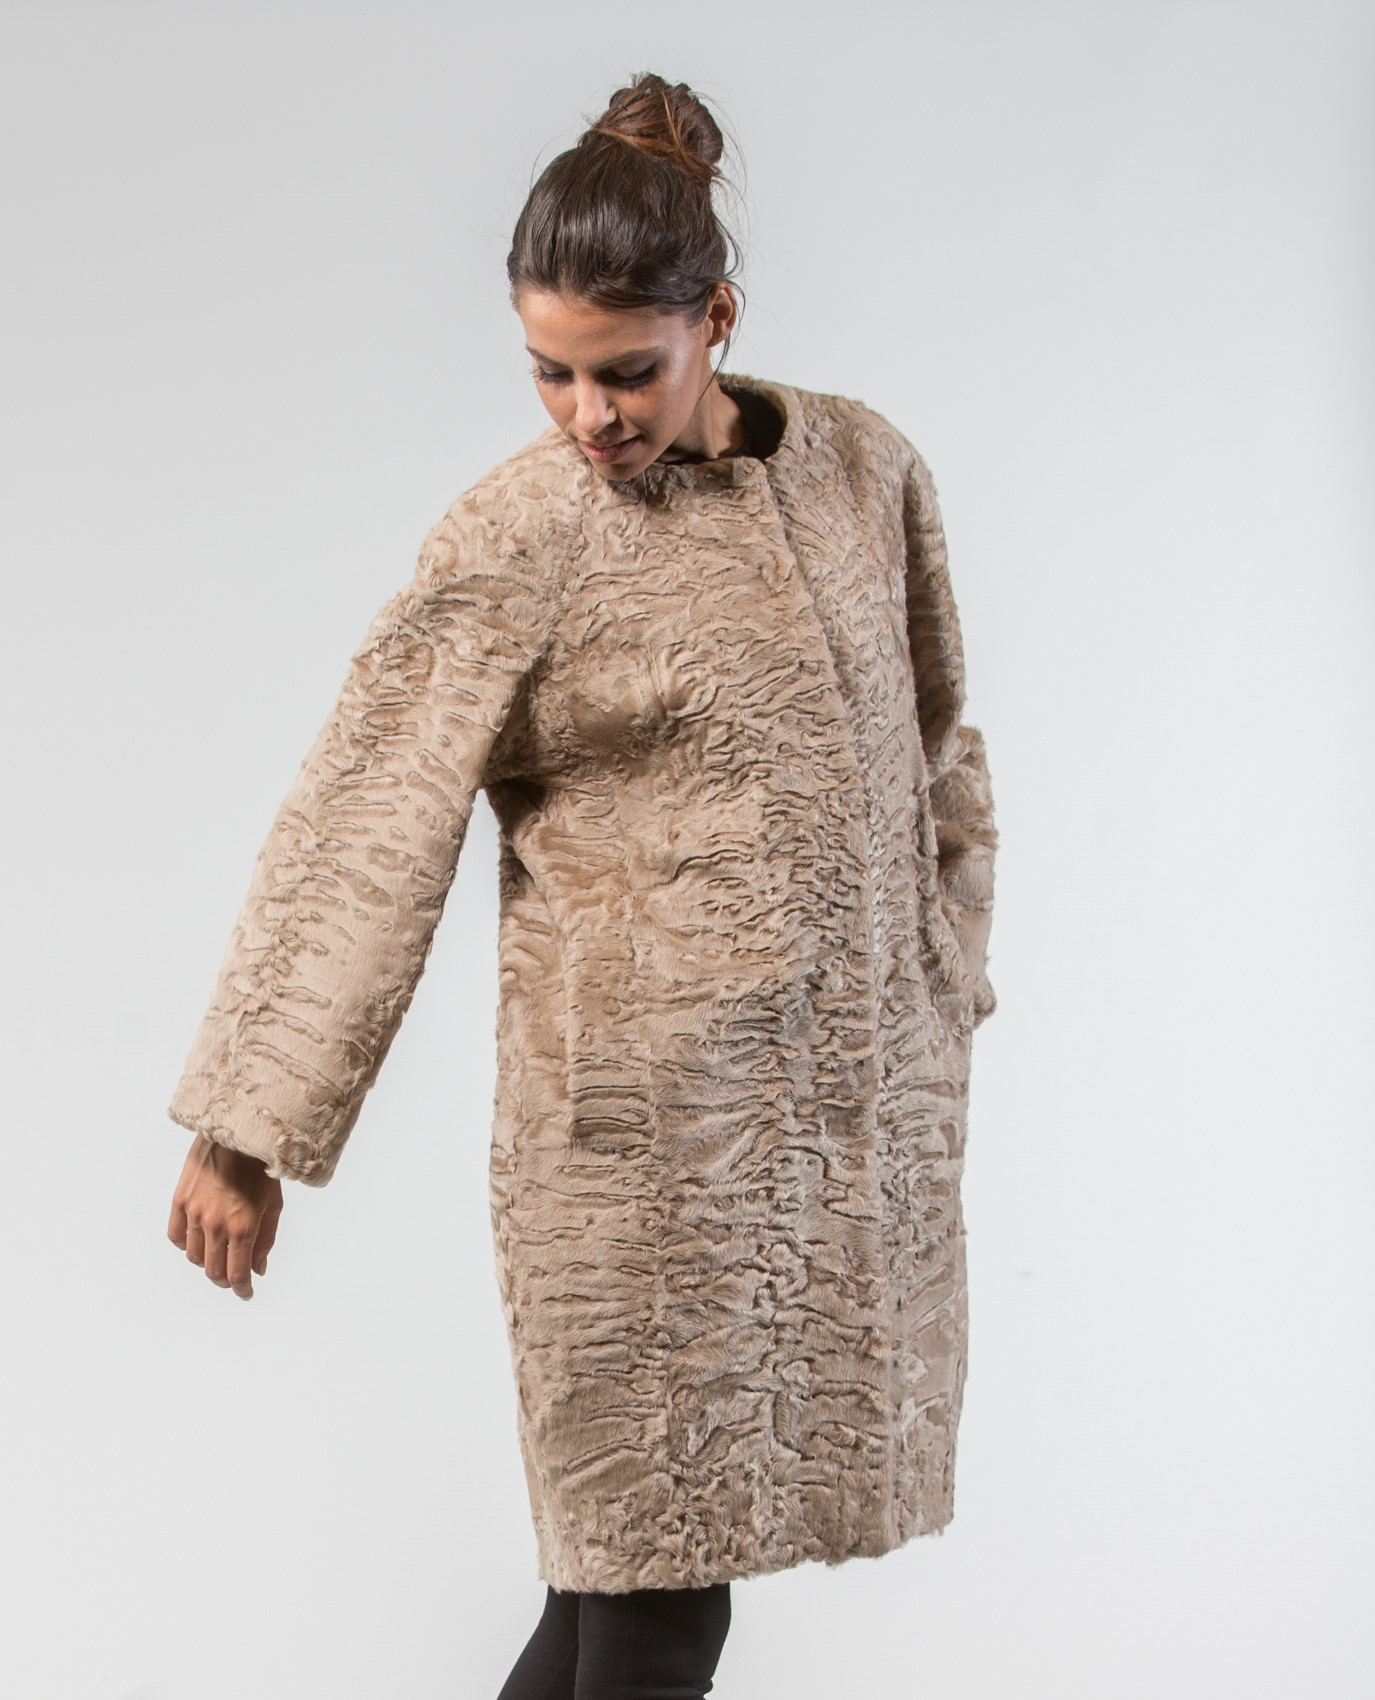 Find great deals on eBay for beige faux fur jacket. Shop with confidence. Skip to main content. eBay: New Listing Women's Medium Scorpio Coat Jacket Faux Fur Beige Tan - Good Condition Warm. Pre-Owned. $ or Best Offer. Free Shipping. Women's Brown / Beige Animal Print Faux Fur Coat Jacket Sz M / L. Pre-Owned.